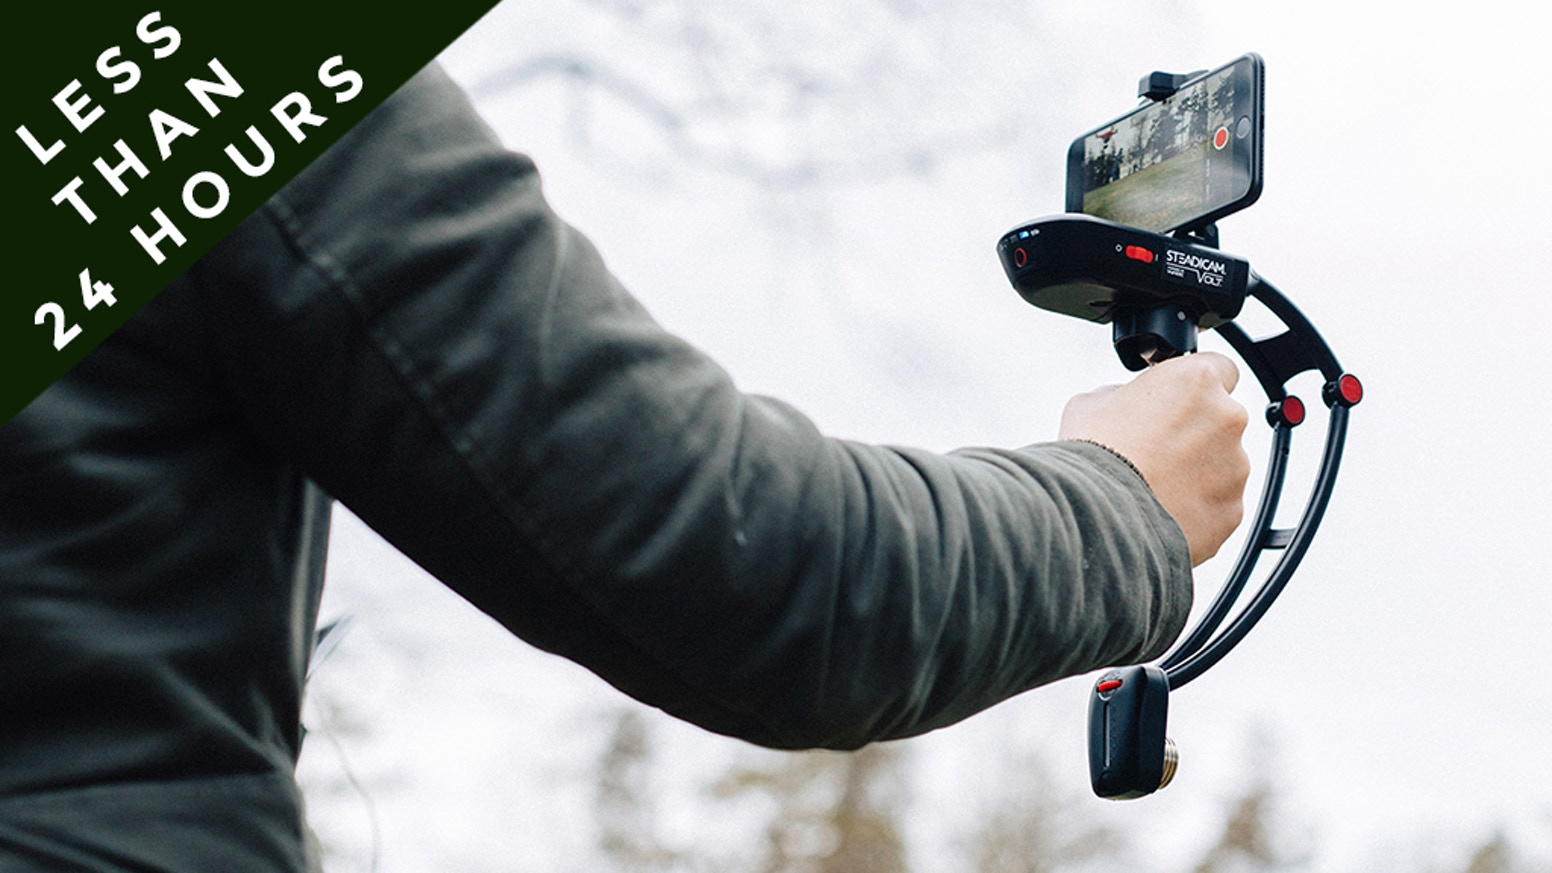 Capture memorable moments more easily and professionally from your smartphone. Mount, Power On and GO!